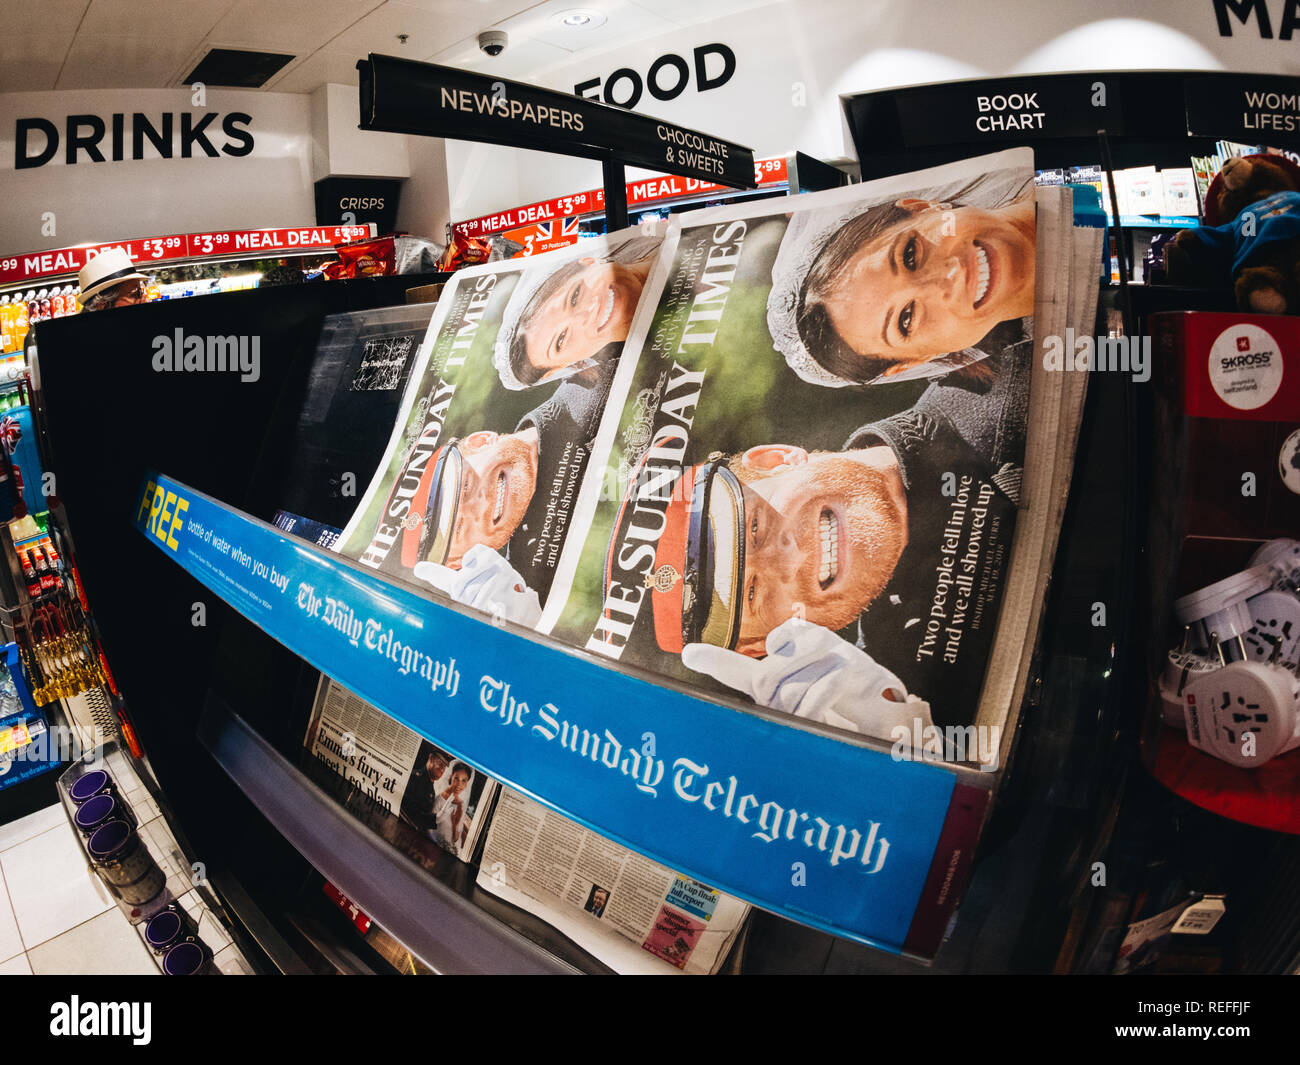 LONDON, ENGLAND - MAY 20, 2018: Front covers of British national newspapers are seen following the Royal Wedding press kiosk between Prince Harry and Meghan Markle The Sunday Times - Stock Image